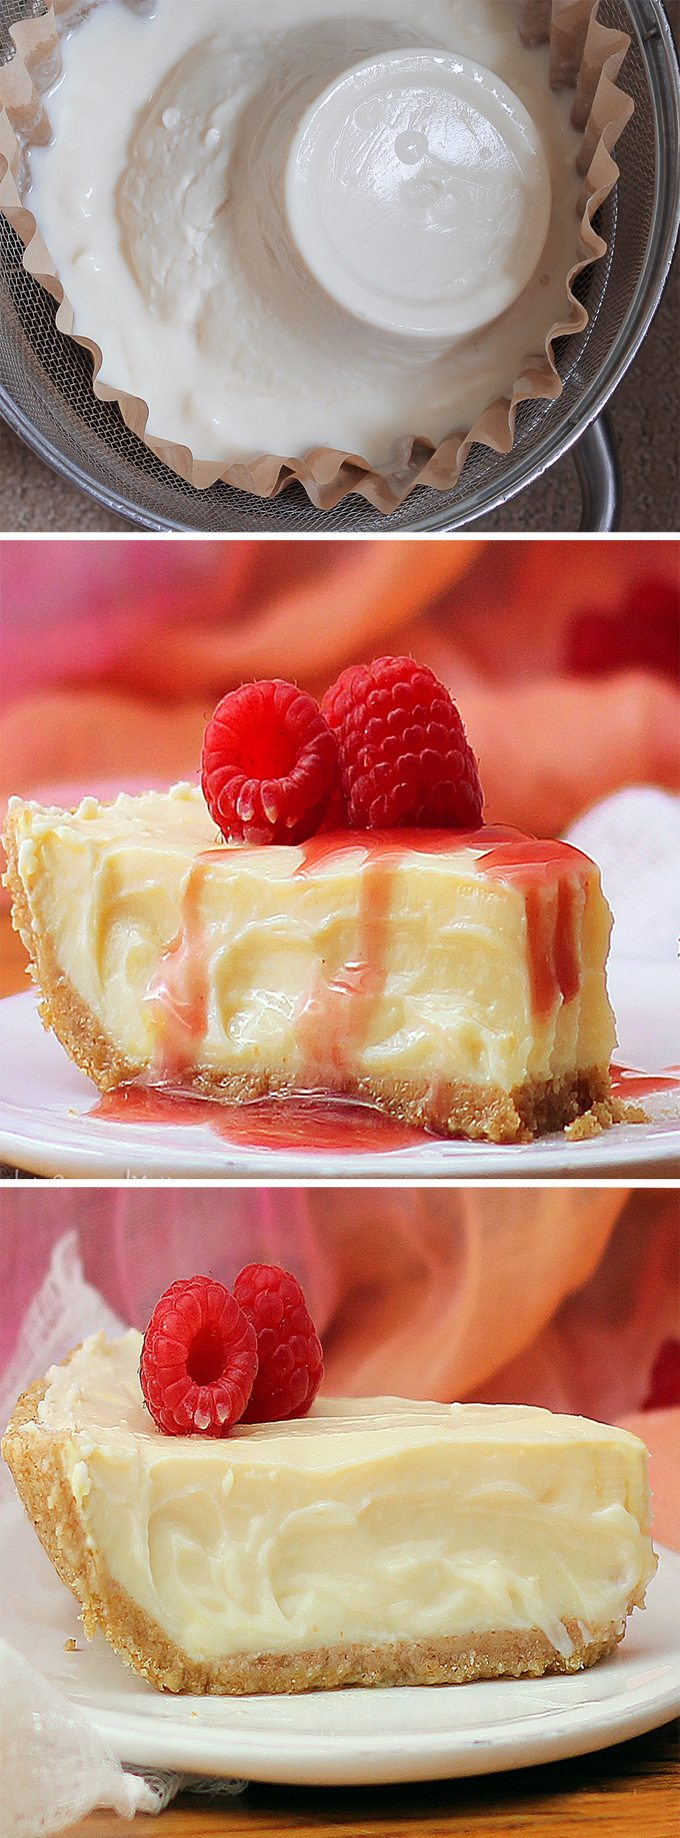 Greek Yogurt Cheesecake – Ingredients: 2 cups yogurt, 1/4 cup maple ...